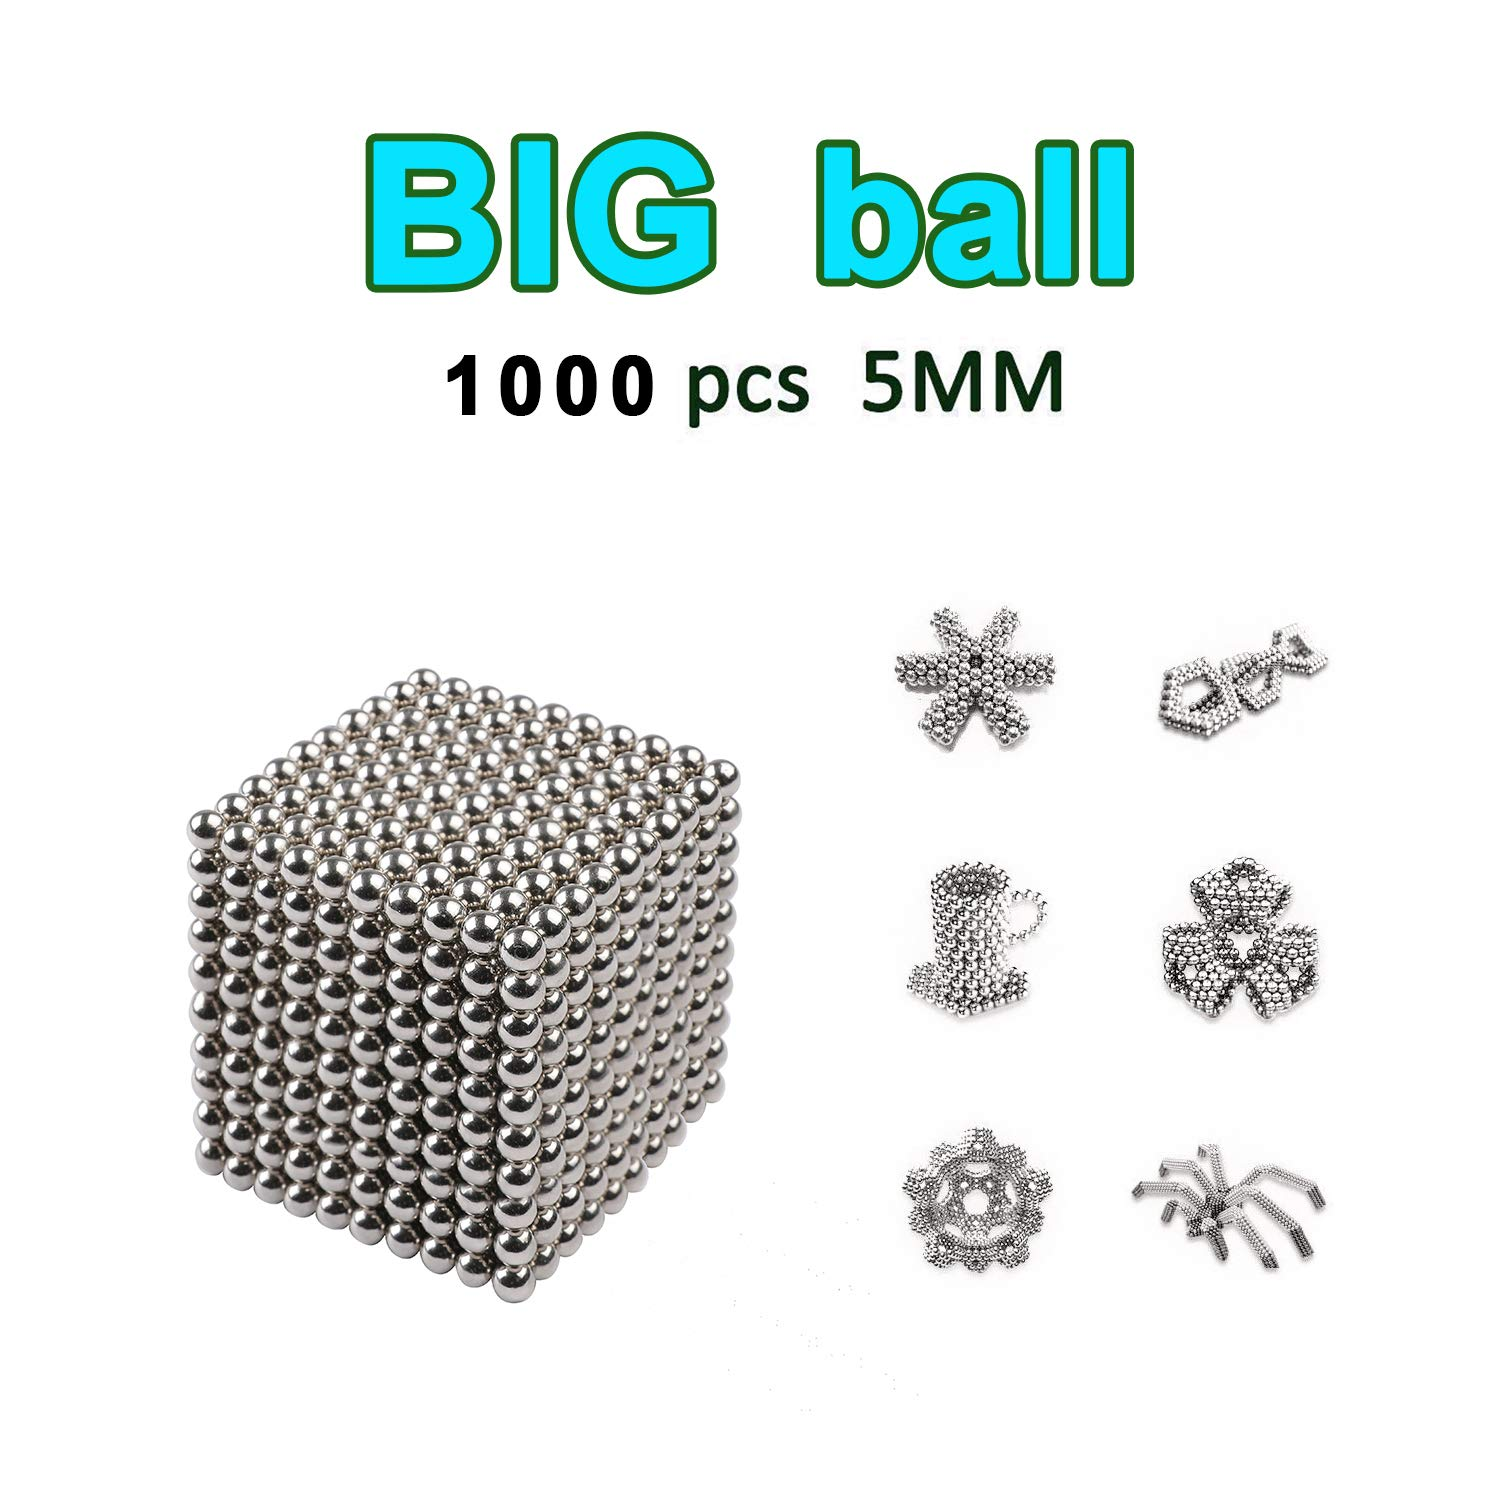 DOTSOG 1000 Pieces 5mm Sculpture Building Blocks Toys for Intelligence DIY Educational Toys& Stress Relief for Adults by DOTSOG